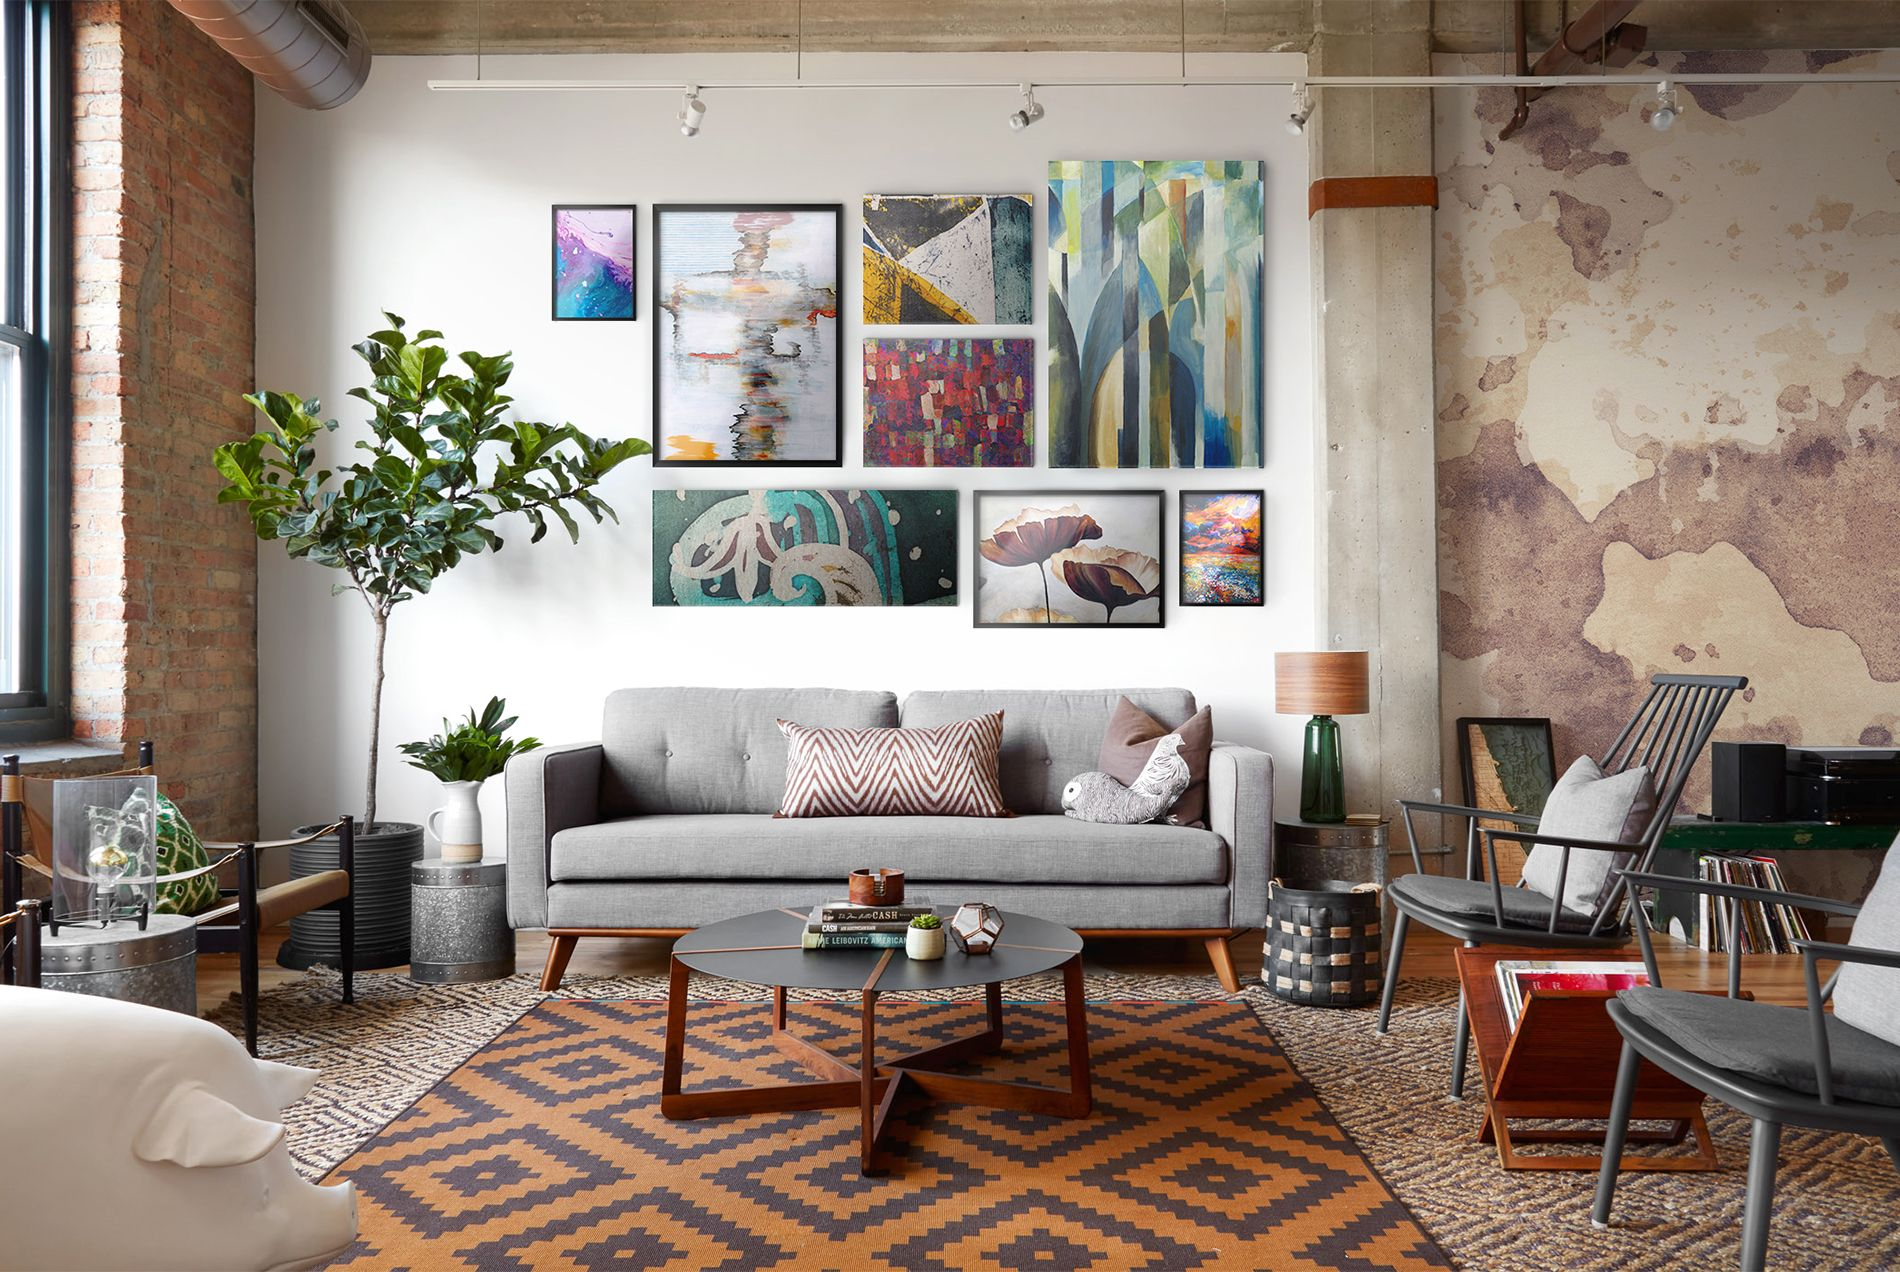 Home gallery • Living room Contemporary Wall Murals Prints